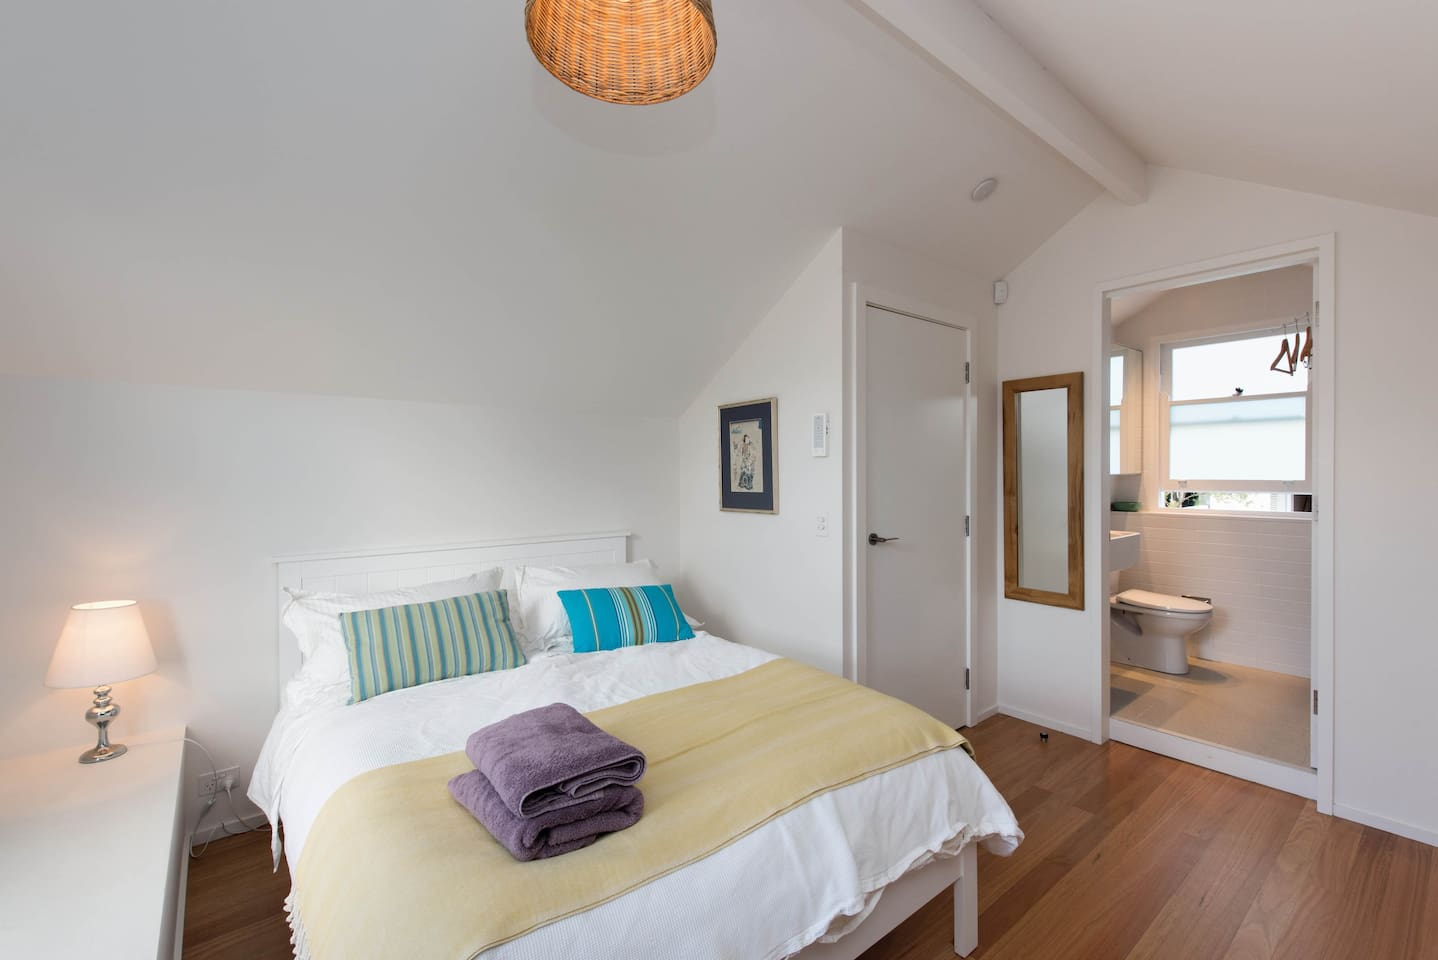 Comfortable double bed in a beautiful light and airy space